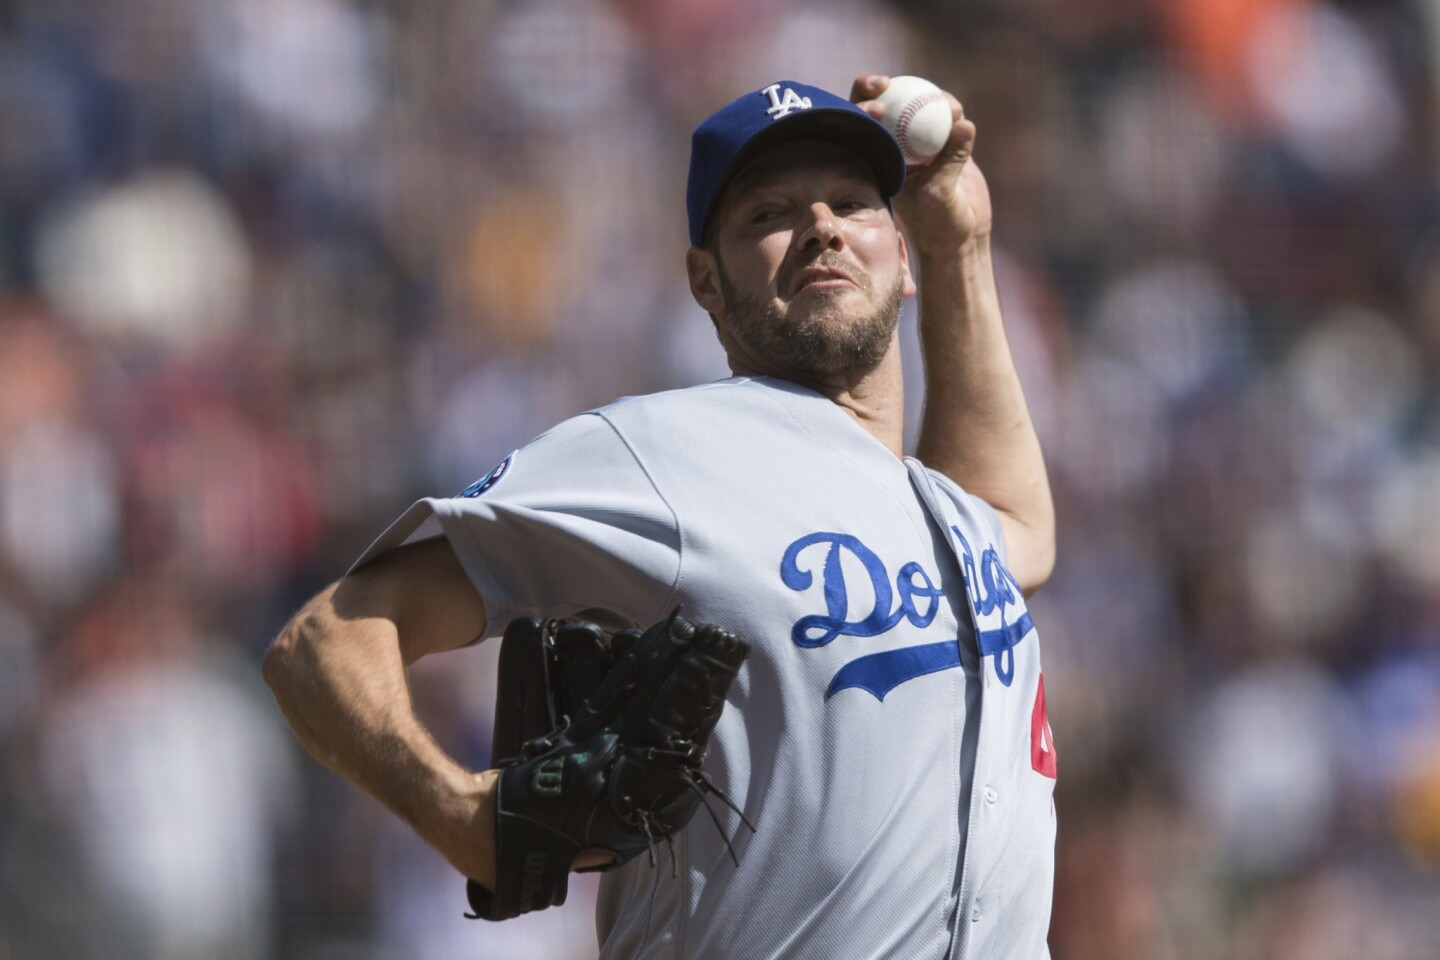 Los Angeles Dodgers starting pitcher Rich Hill throws against the San Francisco Giants in the second inning of a baseball game in San Francisco, Sunday, Sept. 30, 2018.